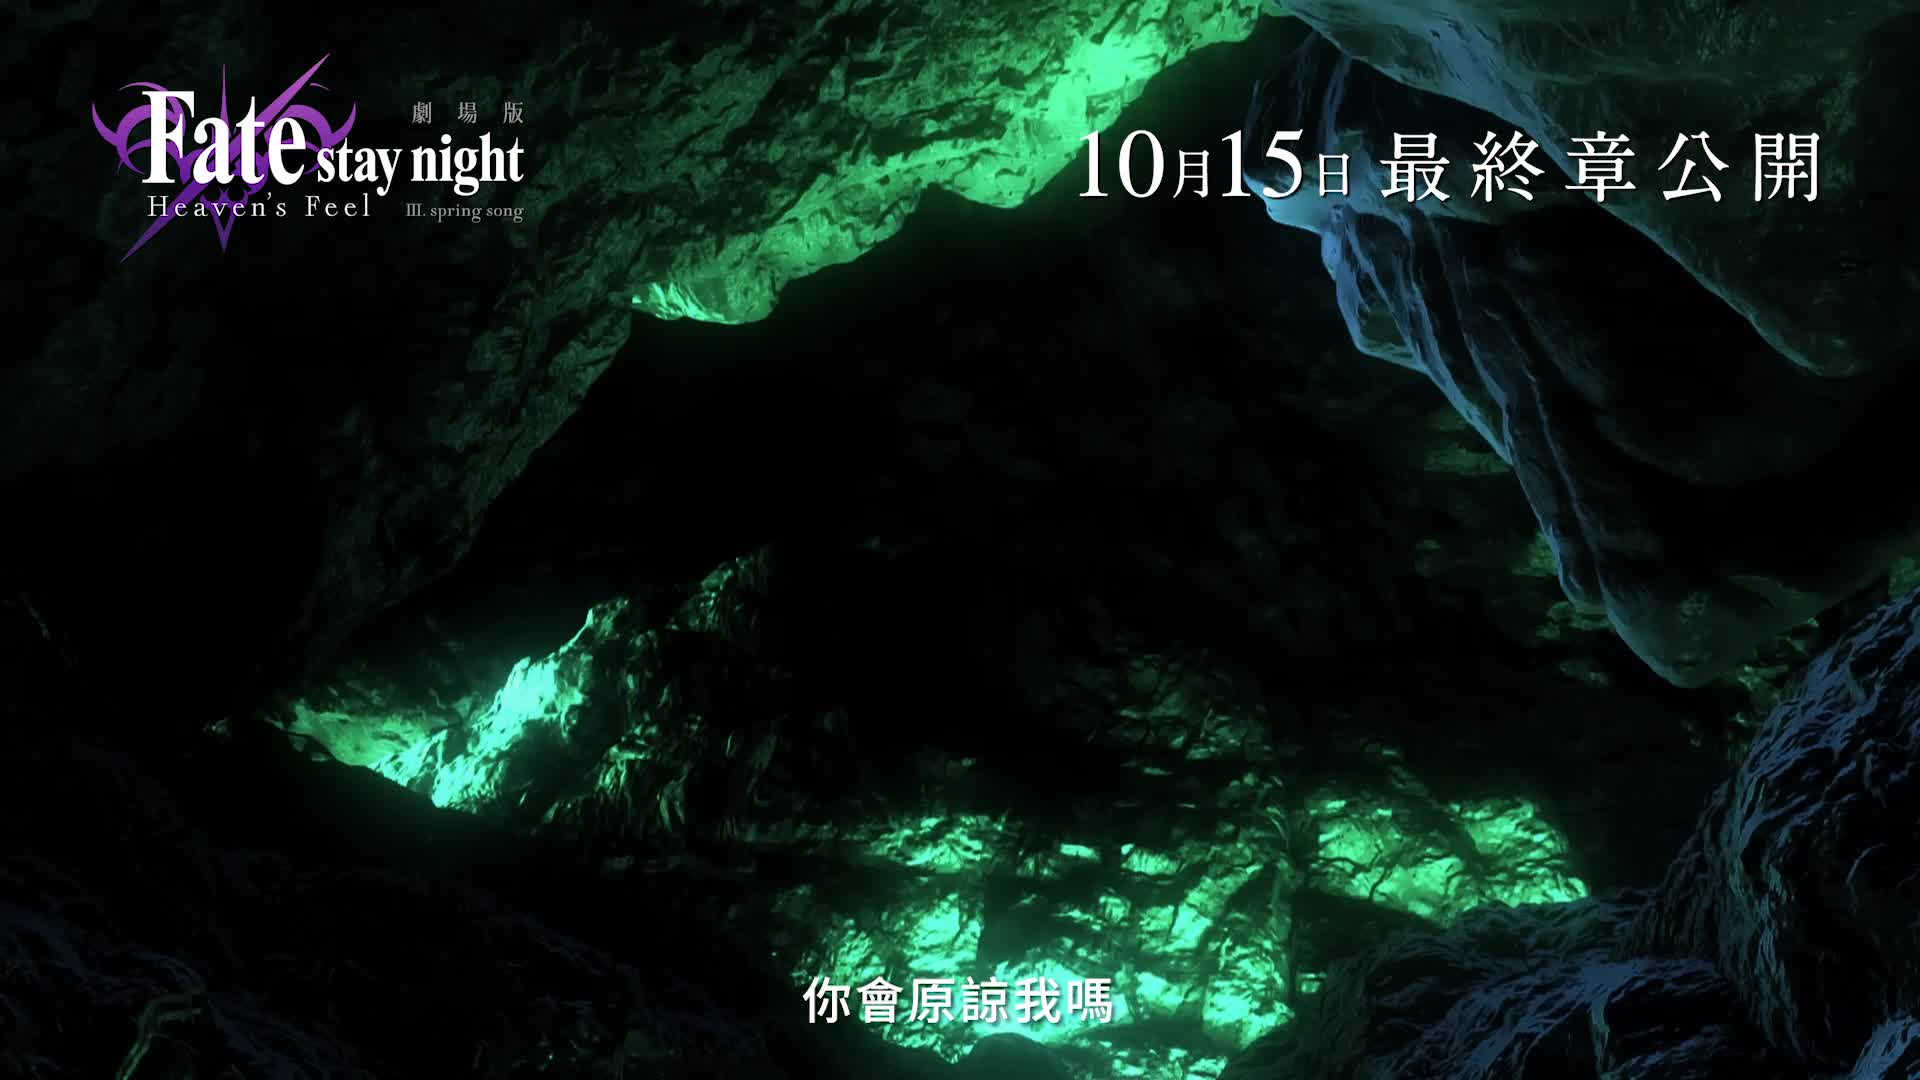 《Fate/stay night Heaven's Feel III. spring song》電影預告